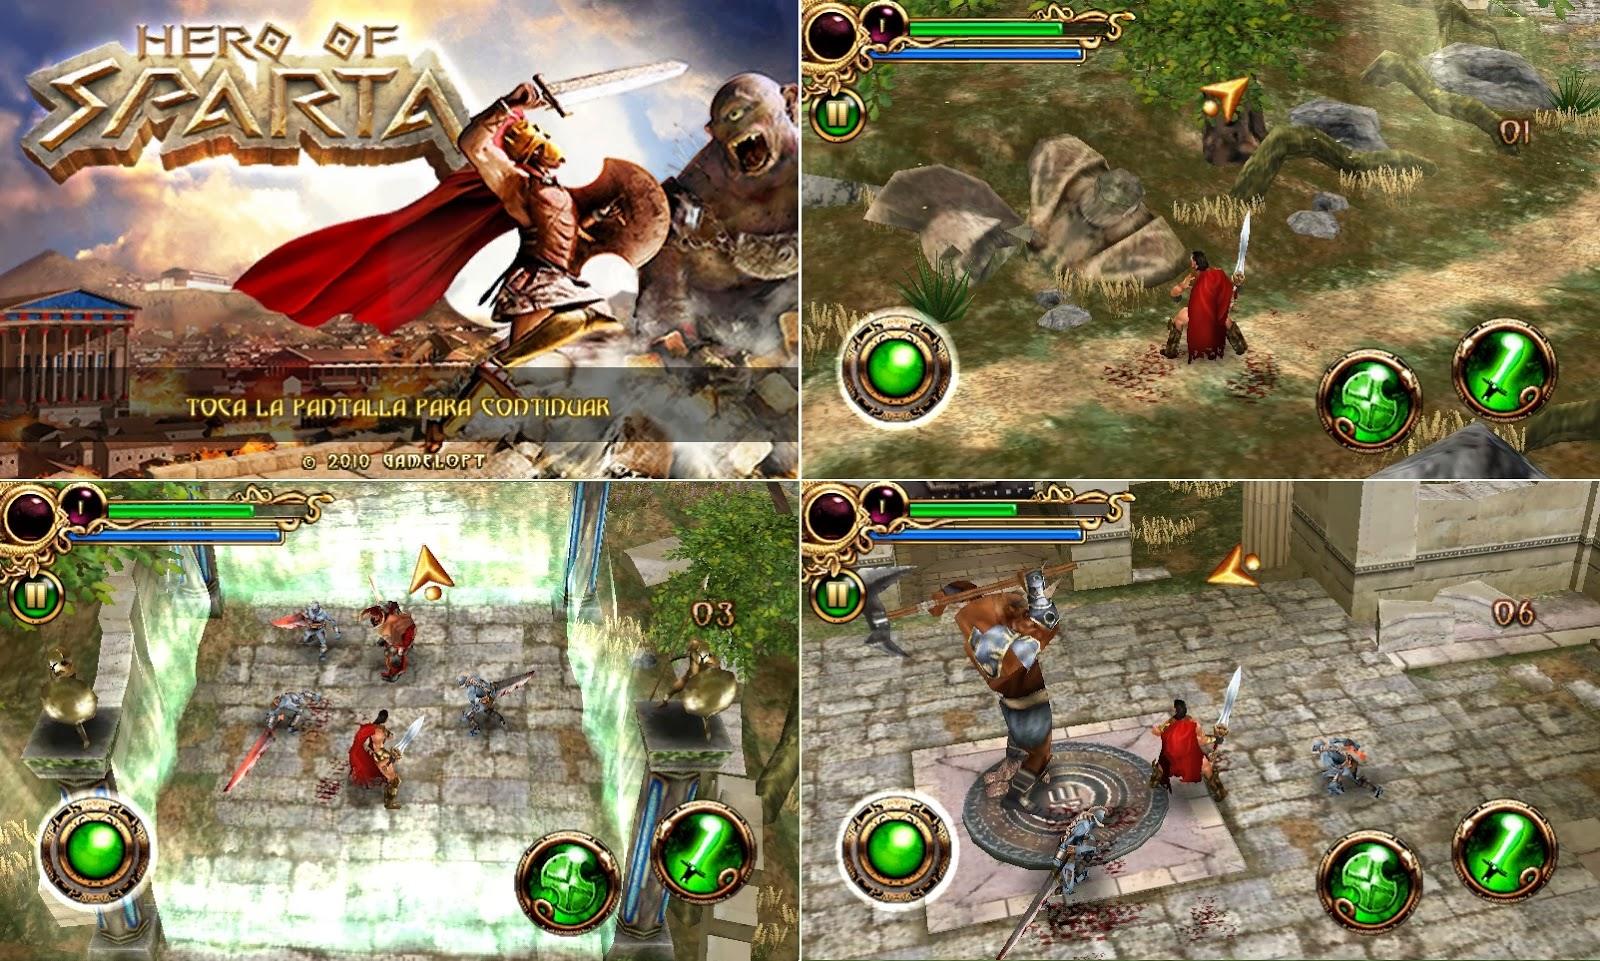 nds rom games